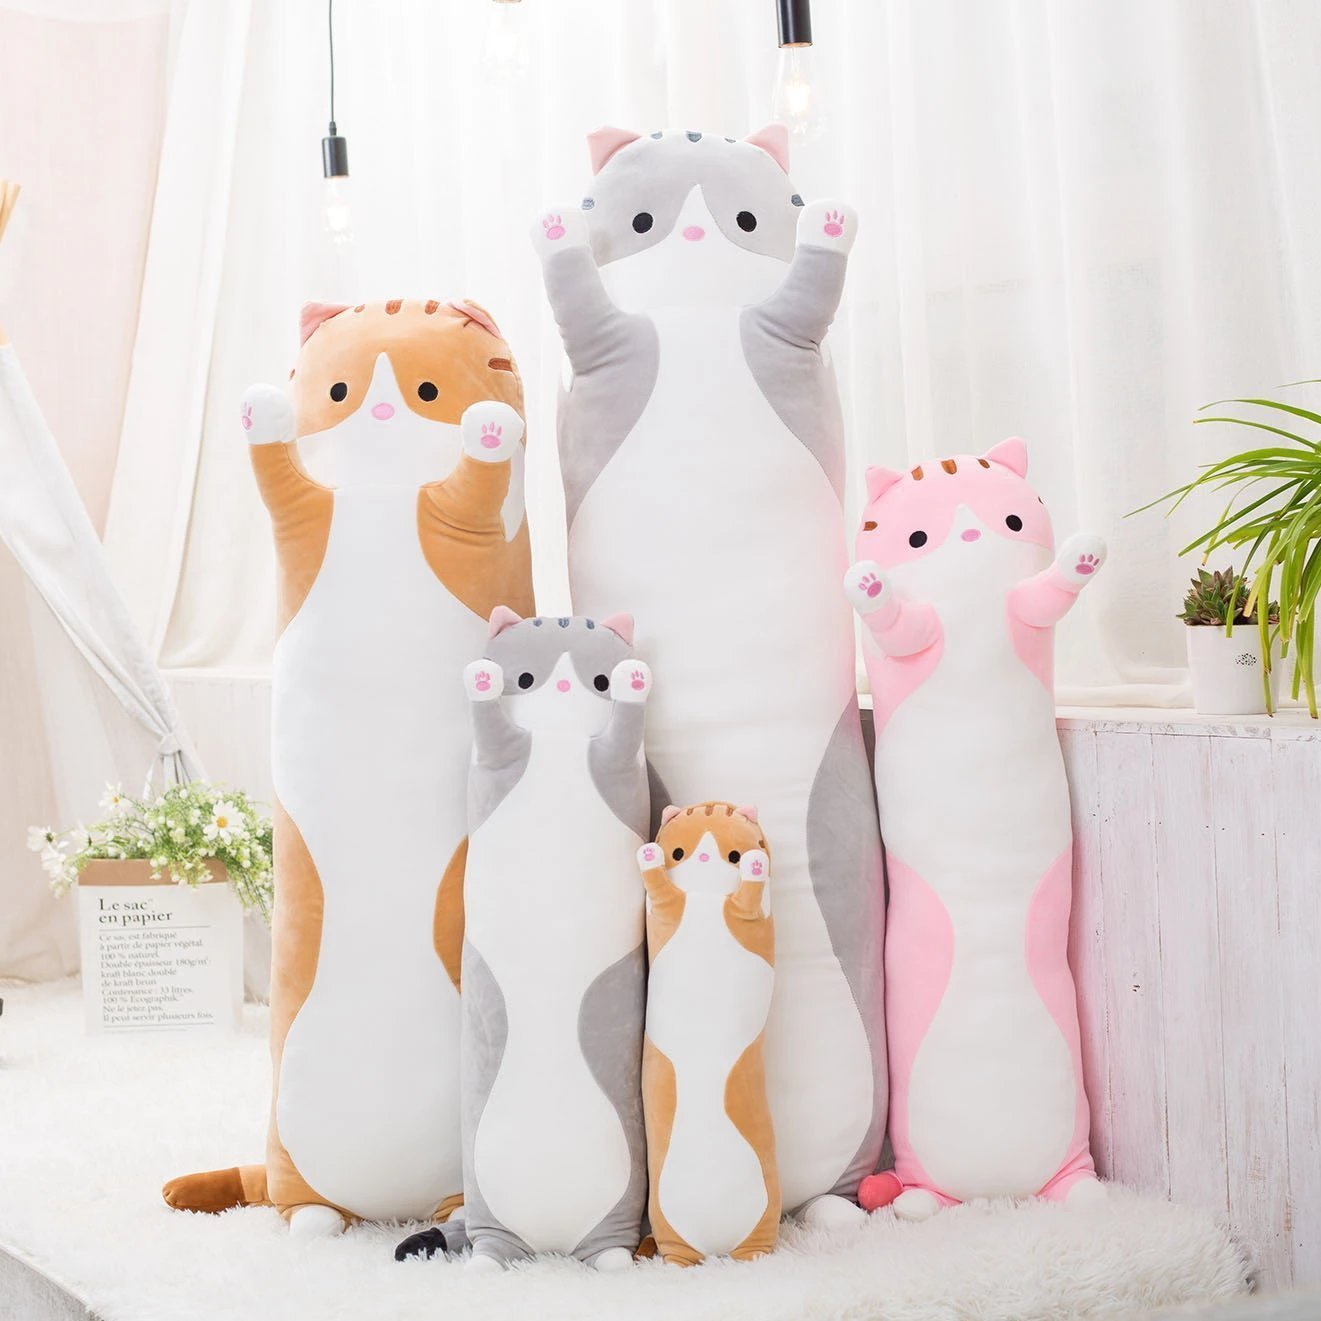 Snuggle Kitty Cat Pillows